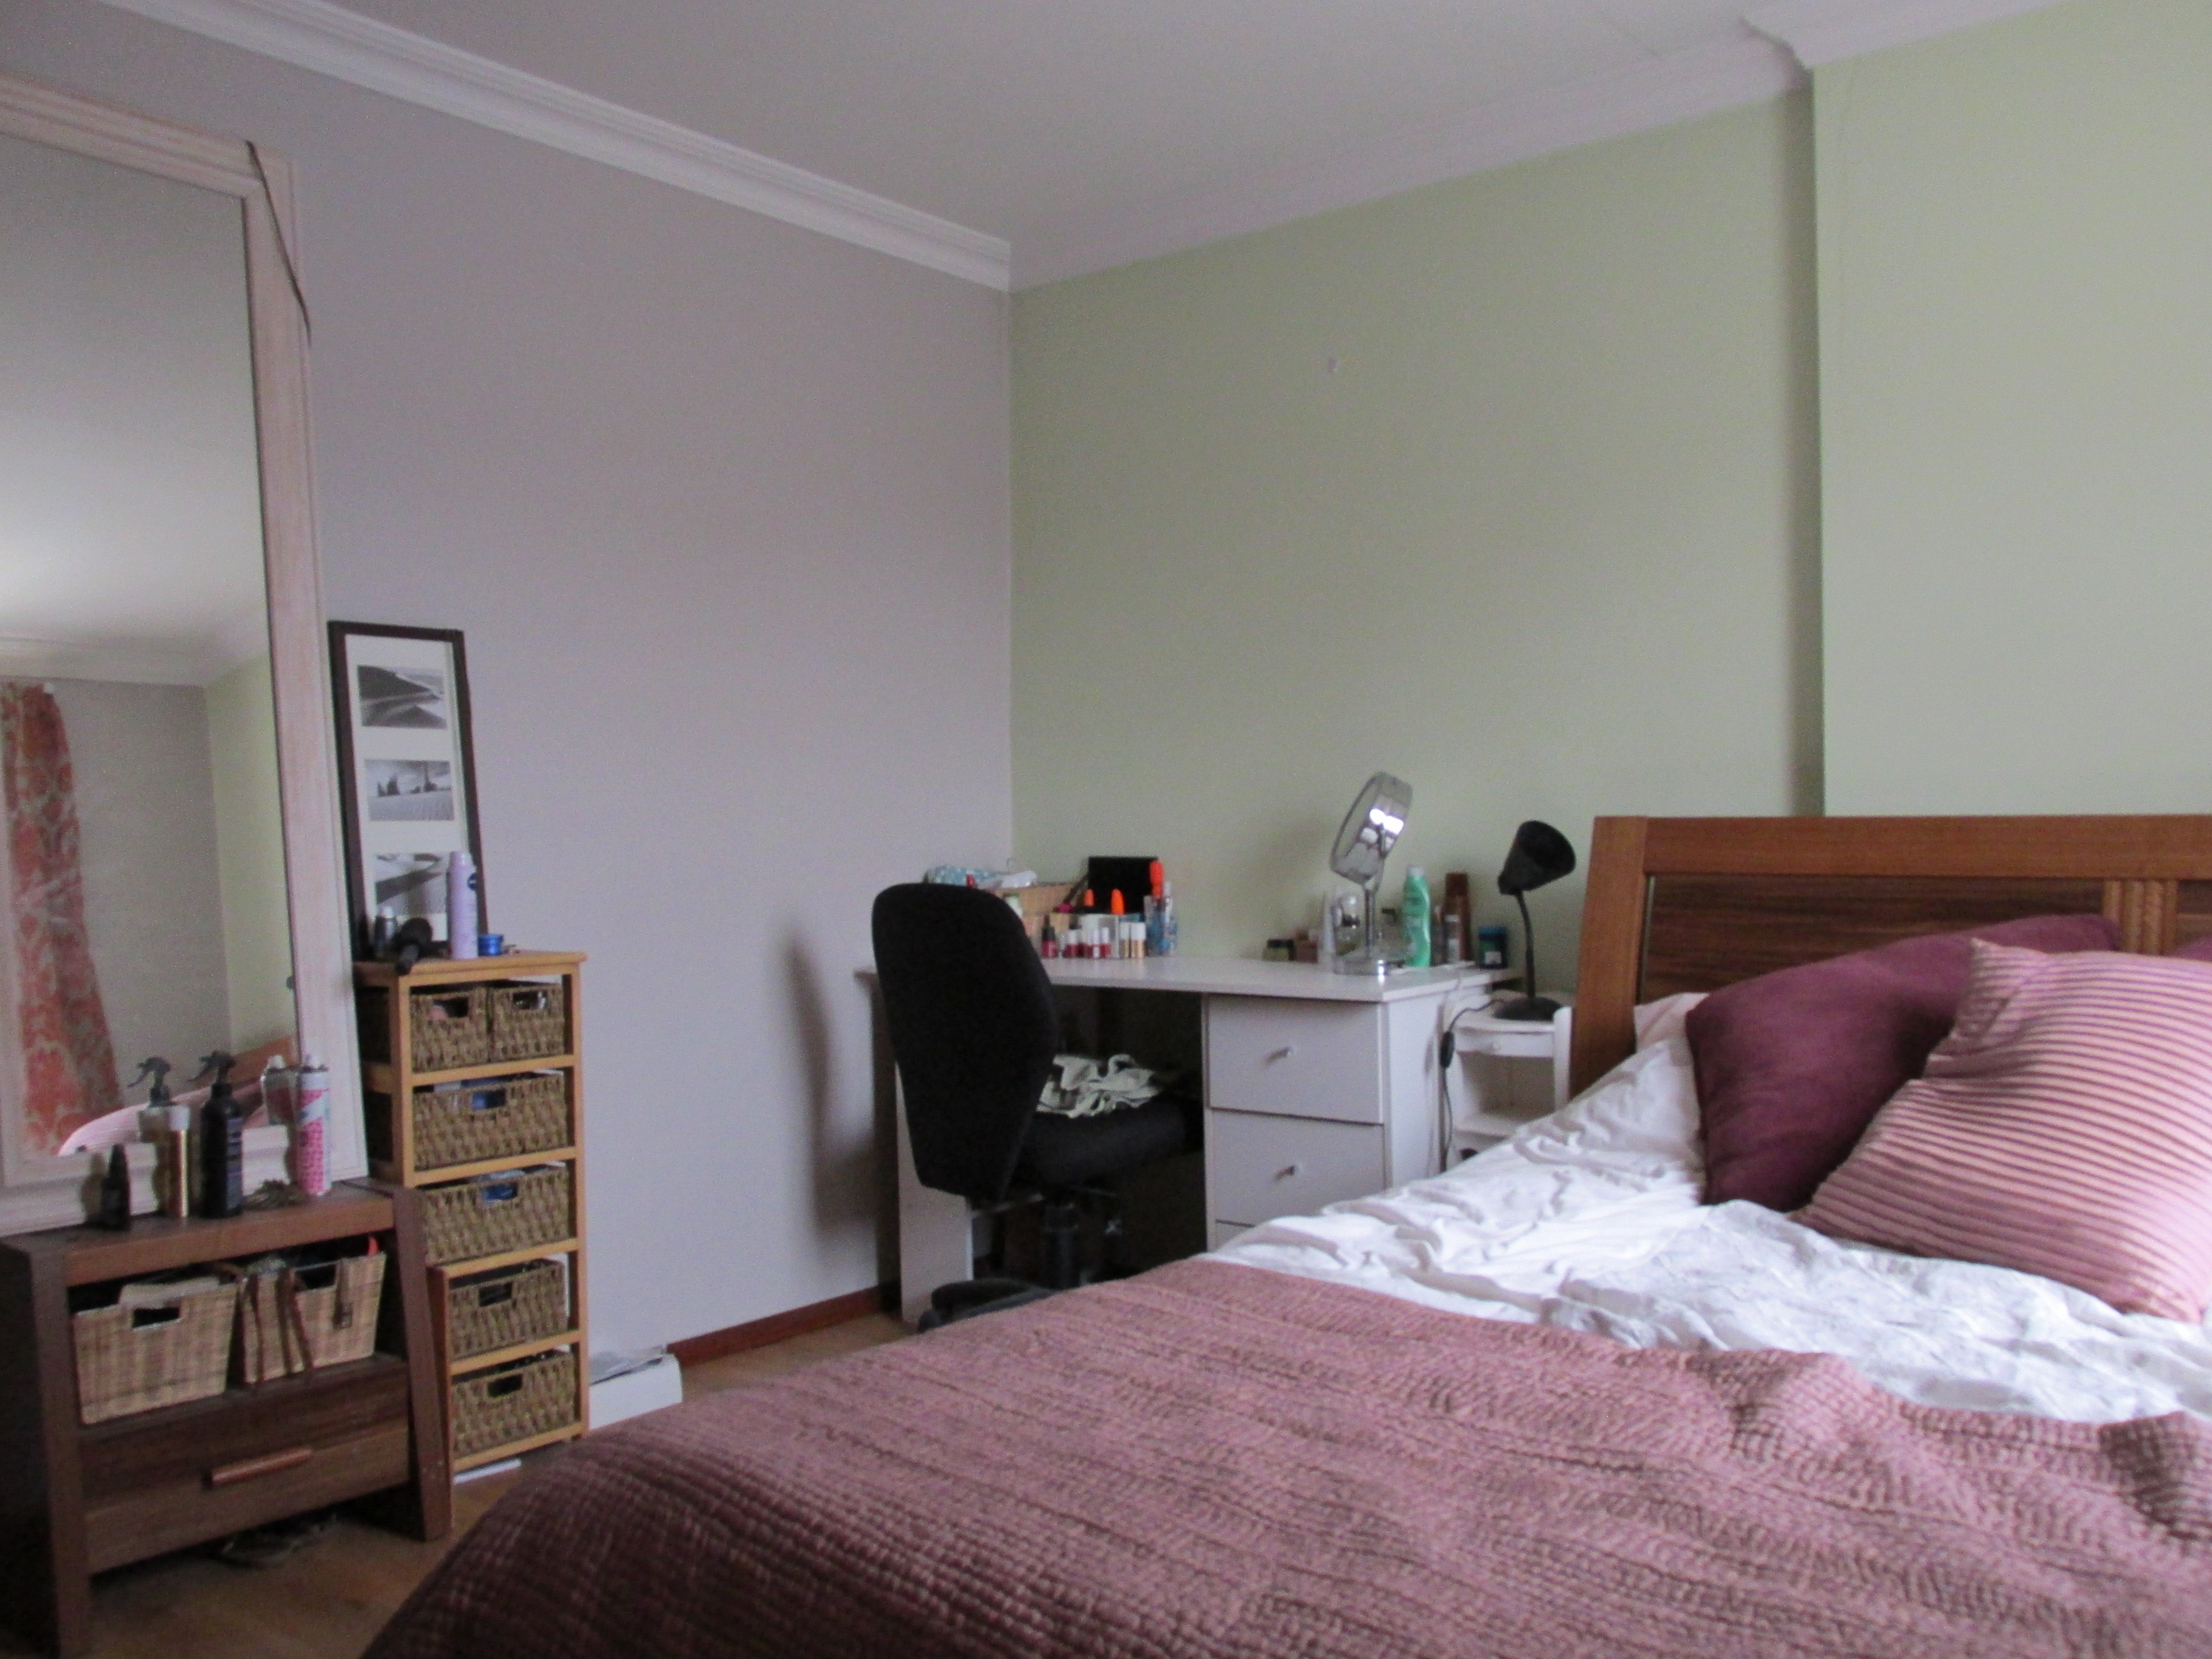 Well located 3 bed flat in Hoxton with excellent transport links